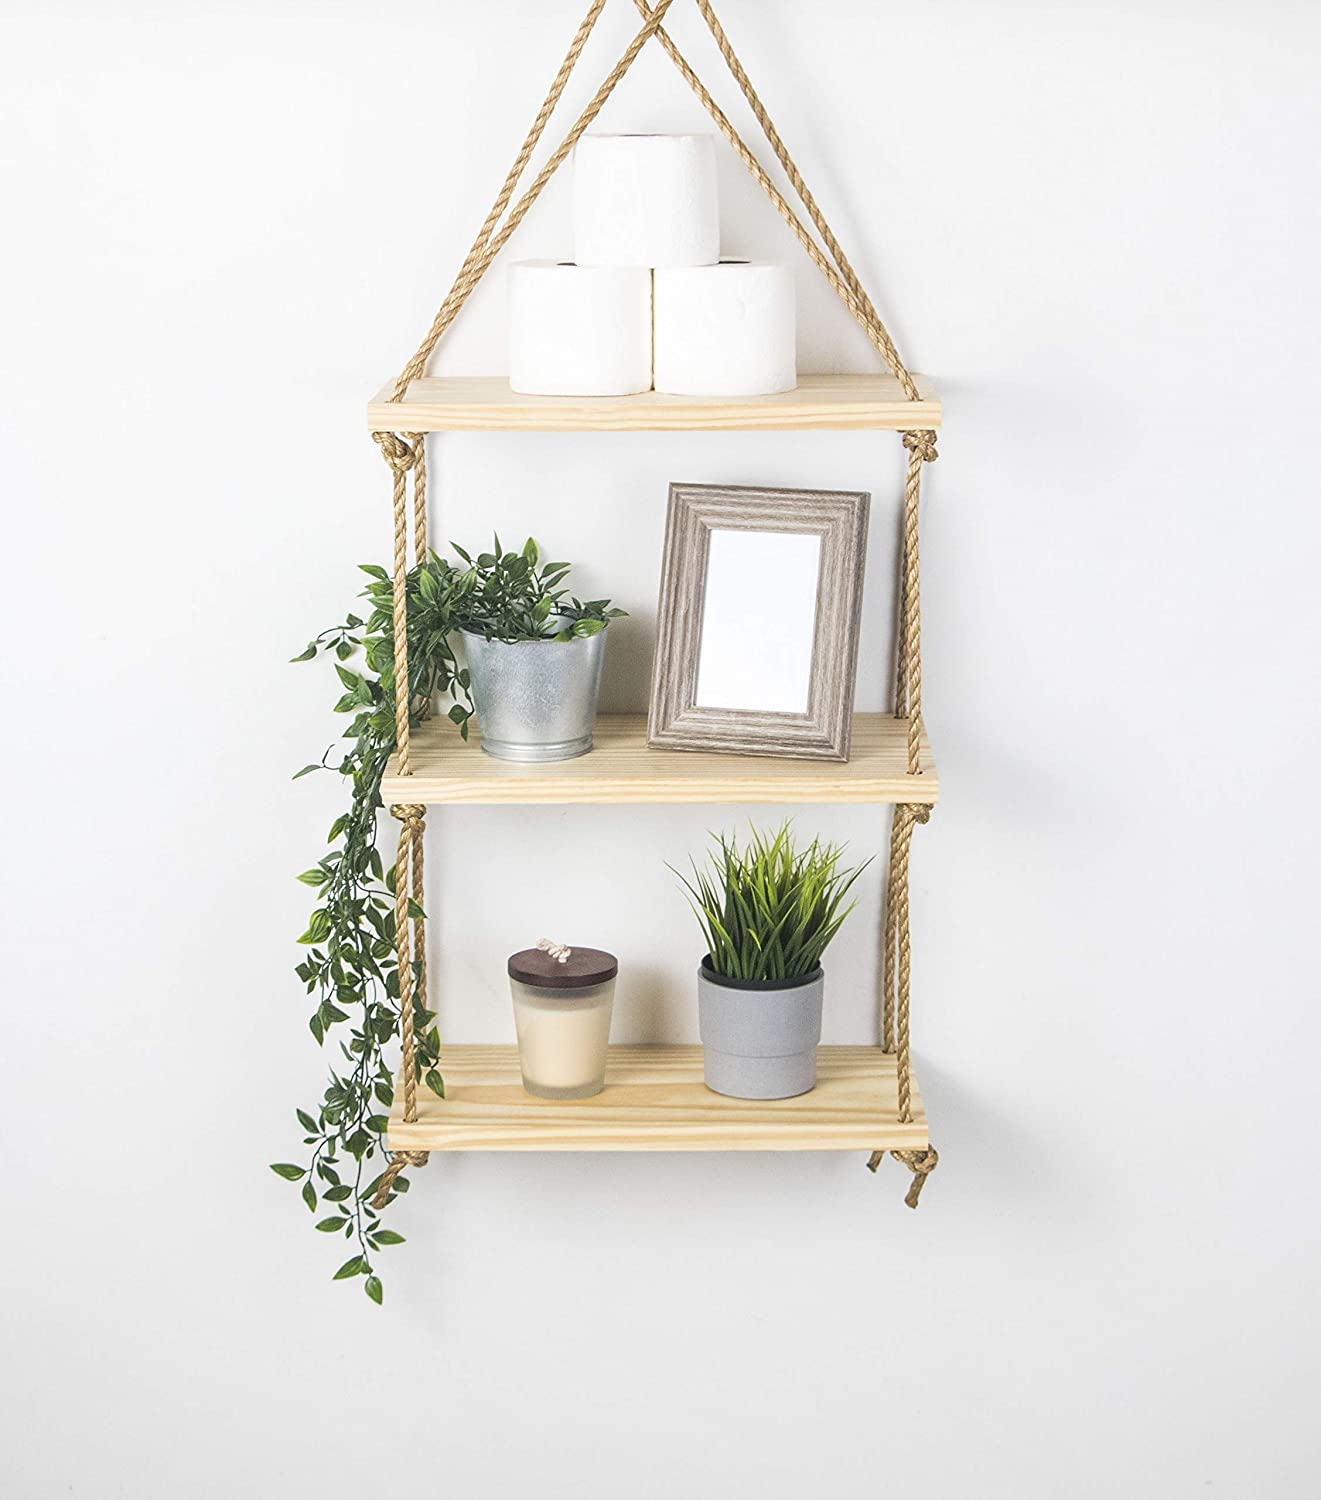 Rustic Hanging Jute Rope Plants 3 Tier Floating Wood Wall Shelves /& Hook Swing Hardware include Latitude 23 Belay Organize and Display Decor Photos